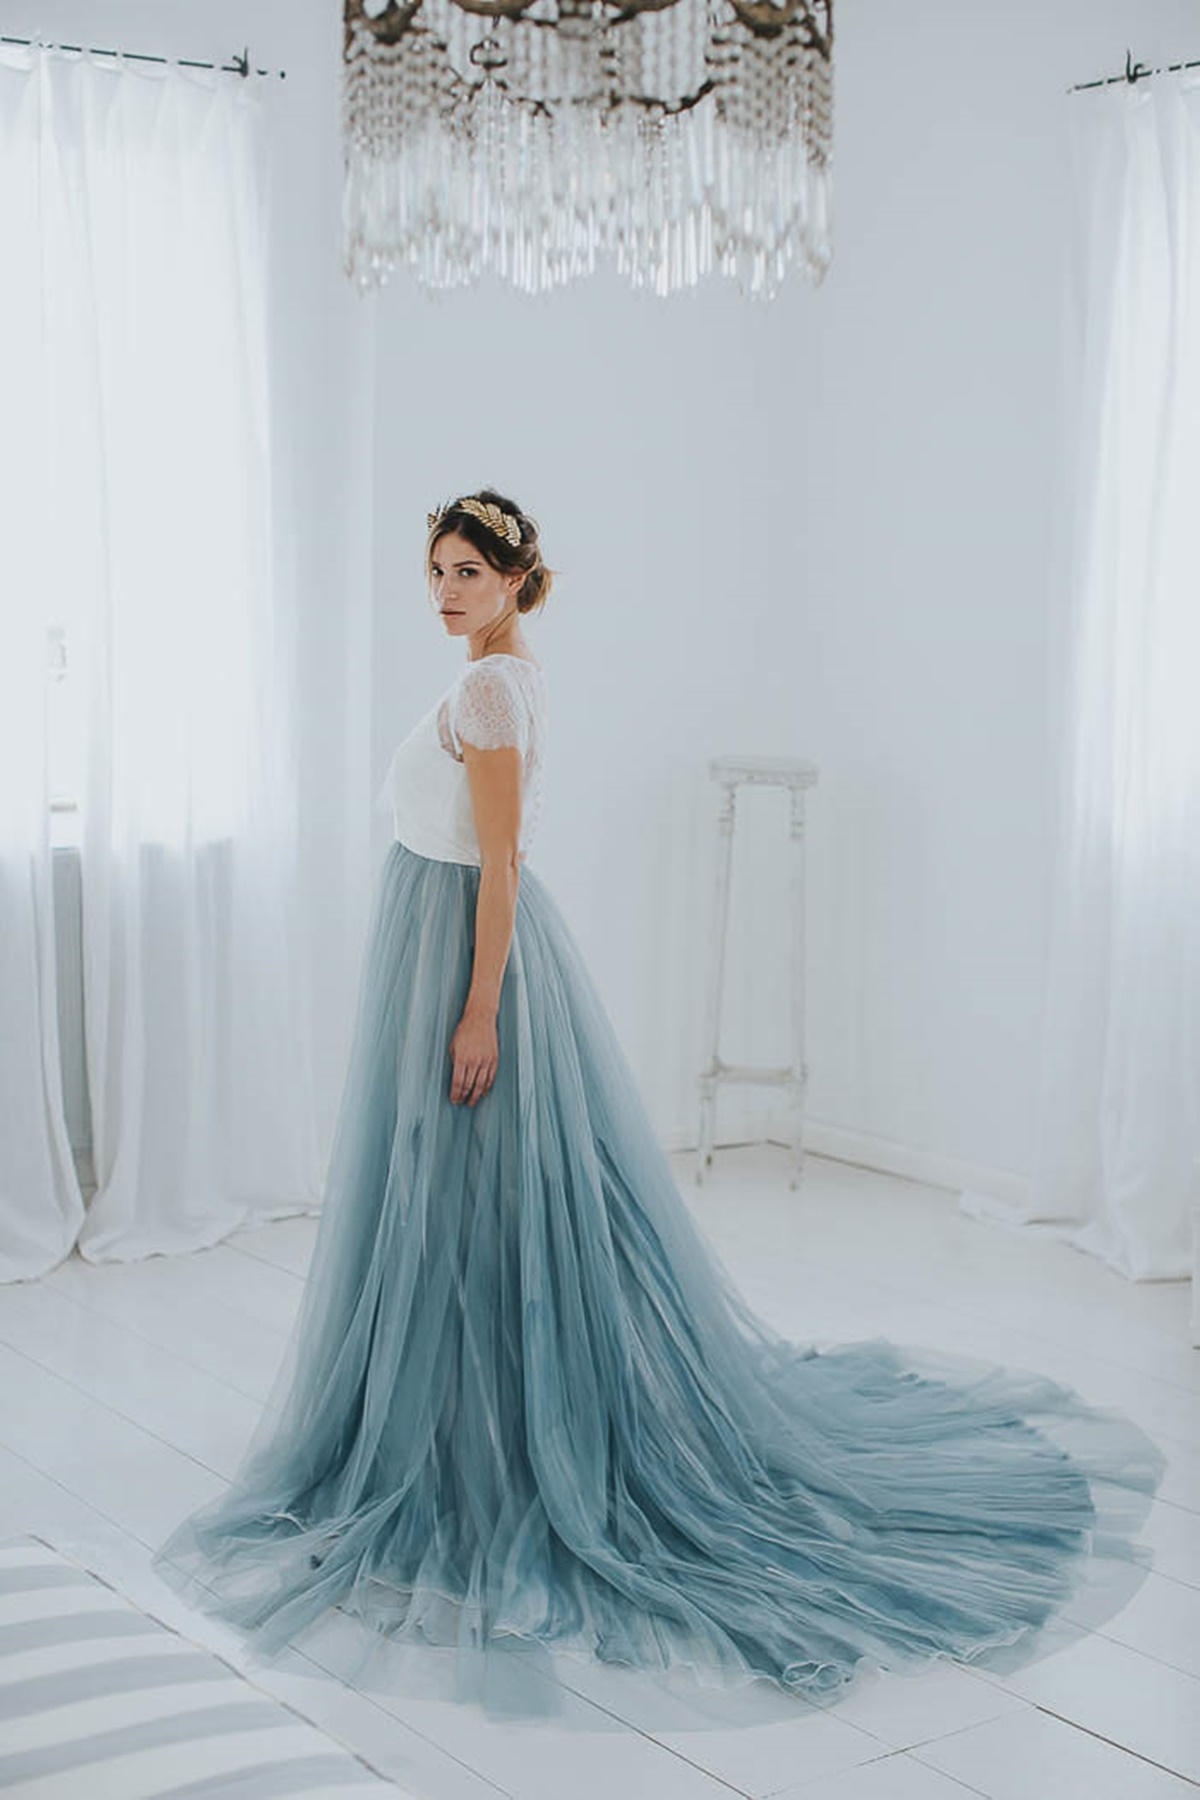 Wedding dress with light blue tulle skirt & lace top | The Wedding Tales